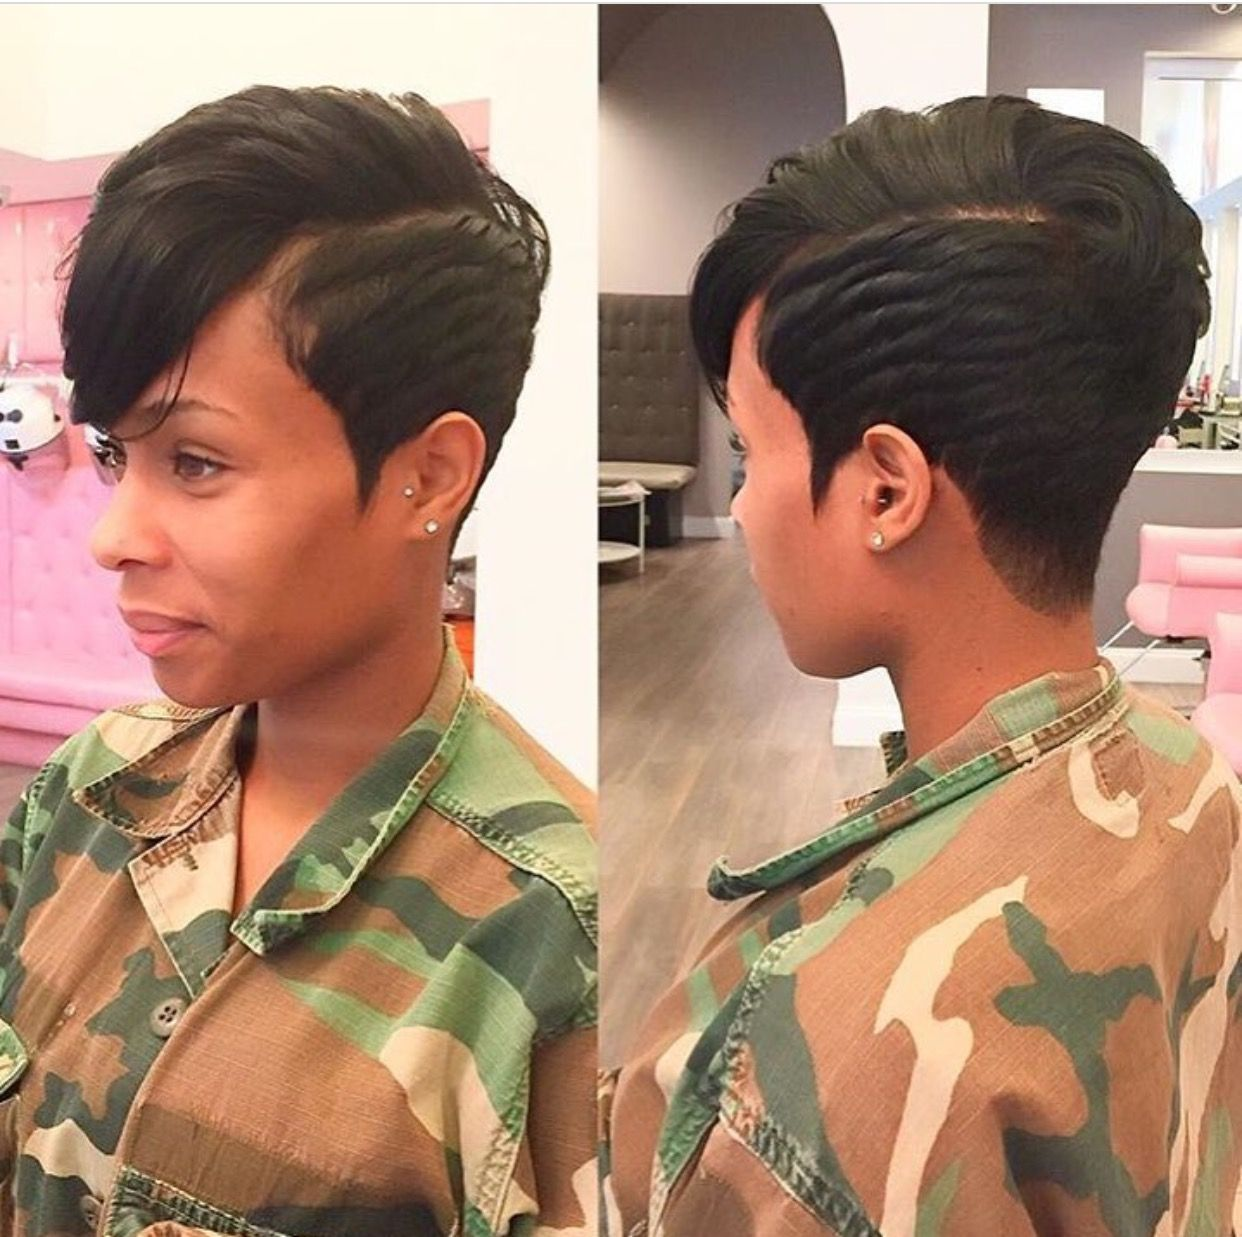 Short Hairstyles Black Hair New ✨ Go Follow Blackgirlsvault For More Celebration Of Black Beauty